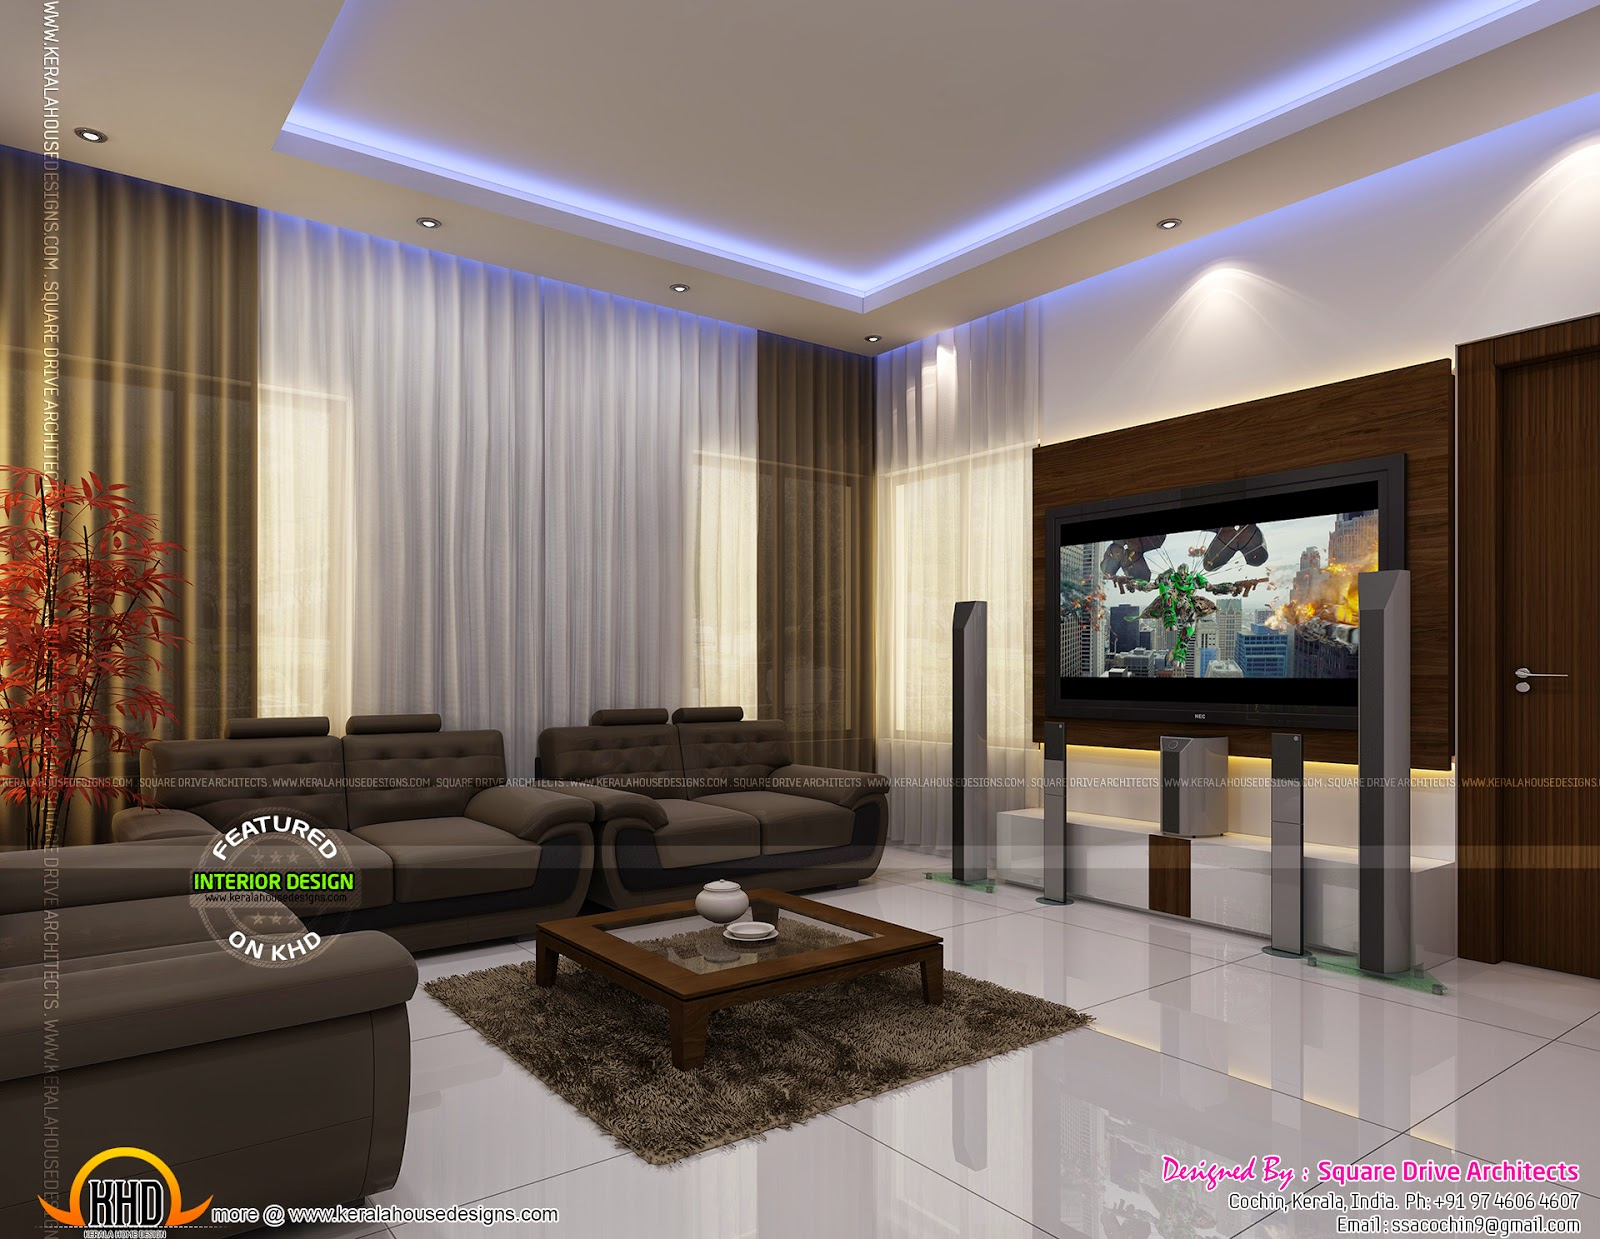 Luxury interior designs in kerala keralahousedesigns for Living room interior in kerala